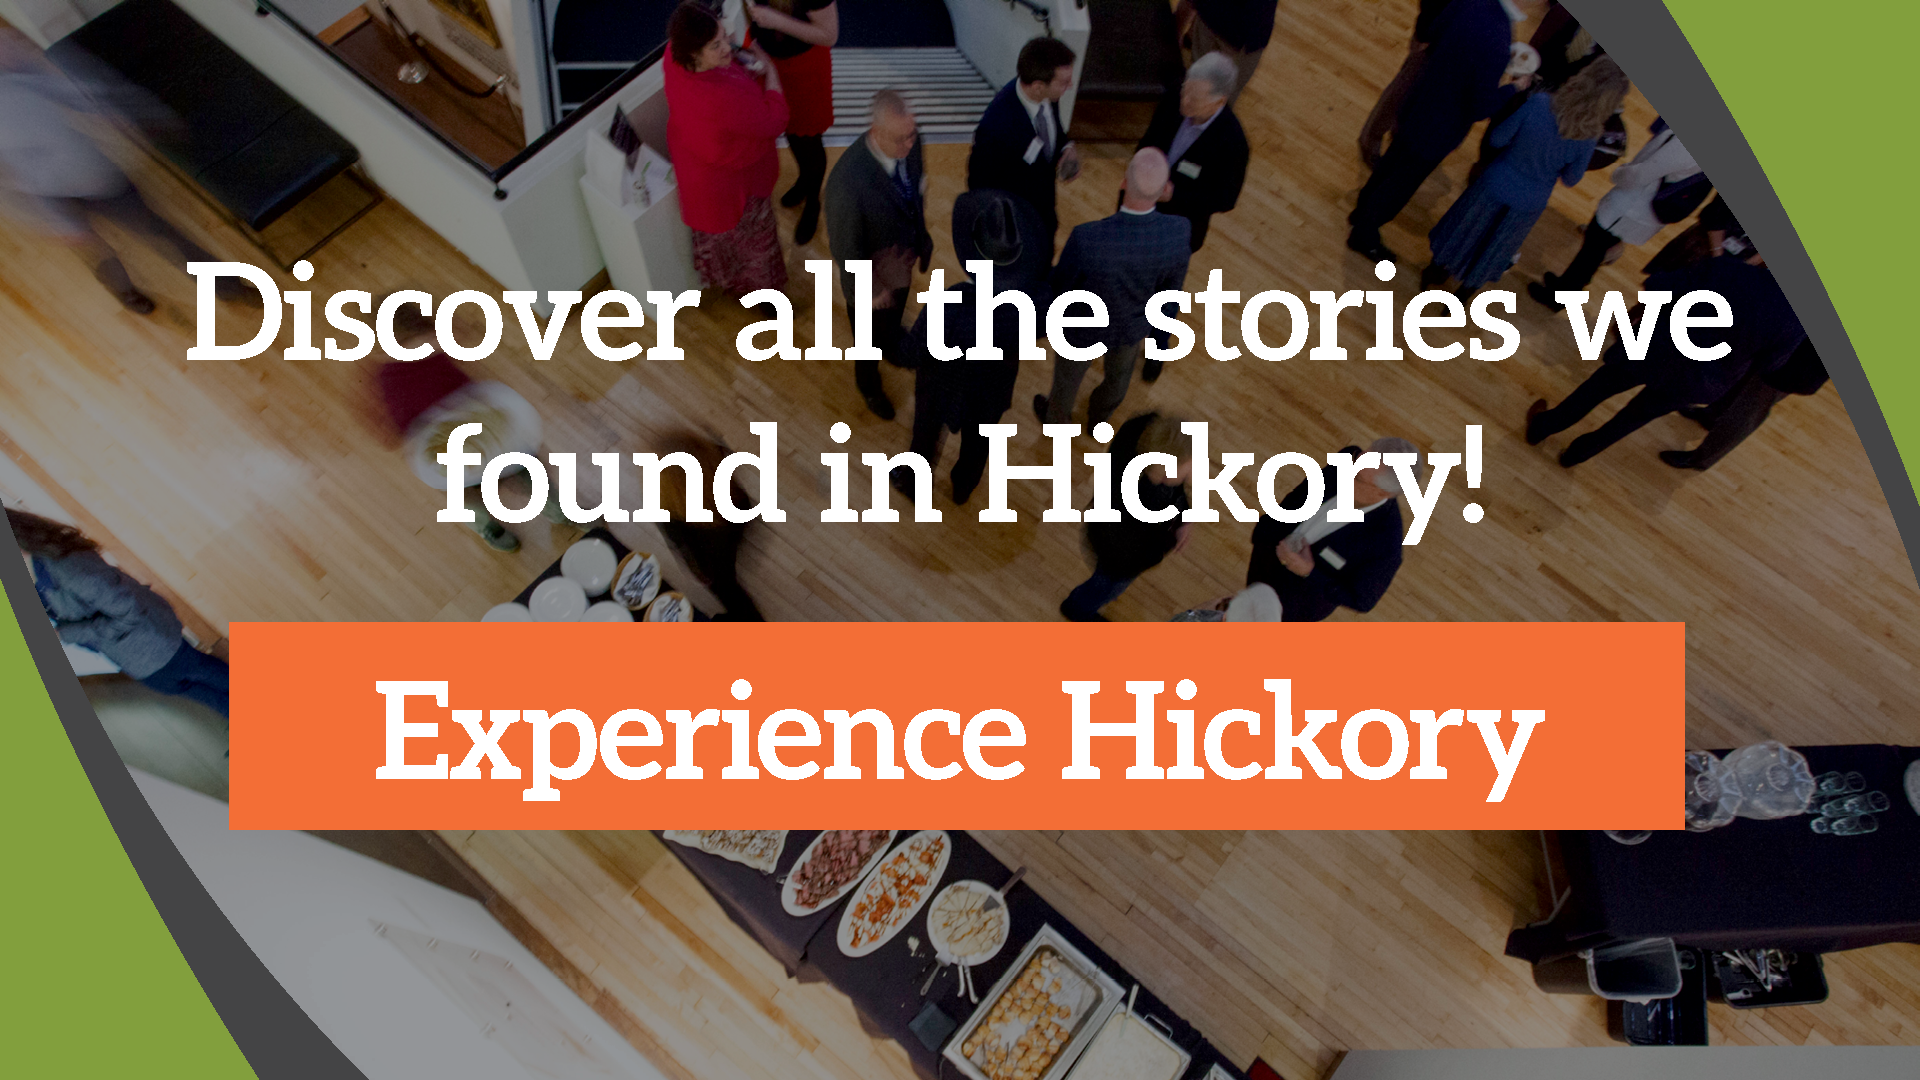 Learn about all the stories we found in Hickory - https://www.unctv.org/about/pressroom/pmnccareshickory